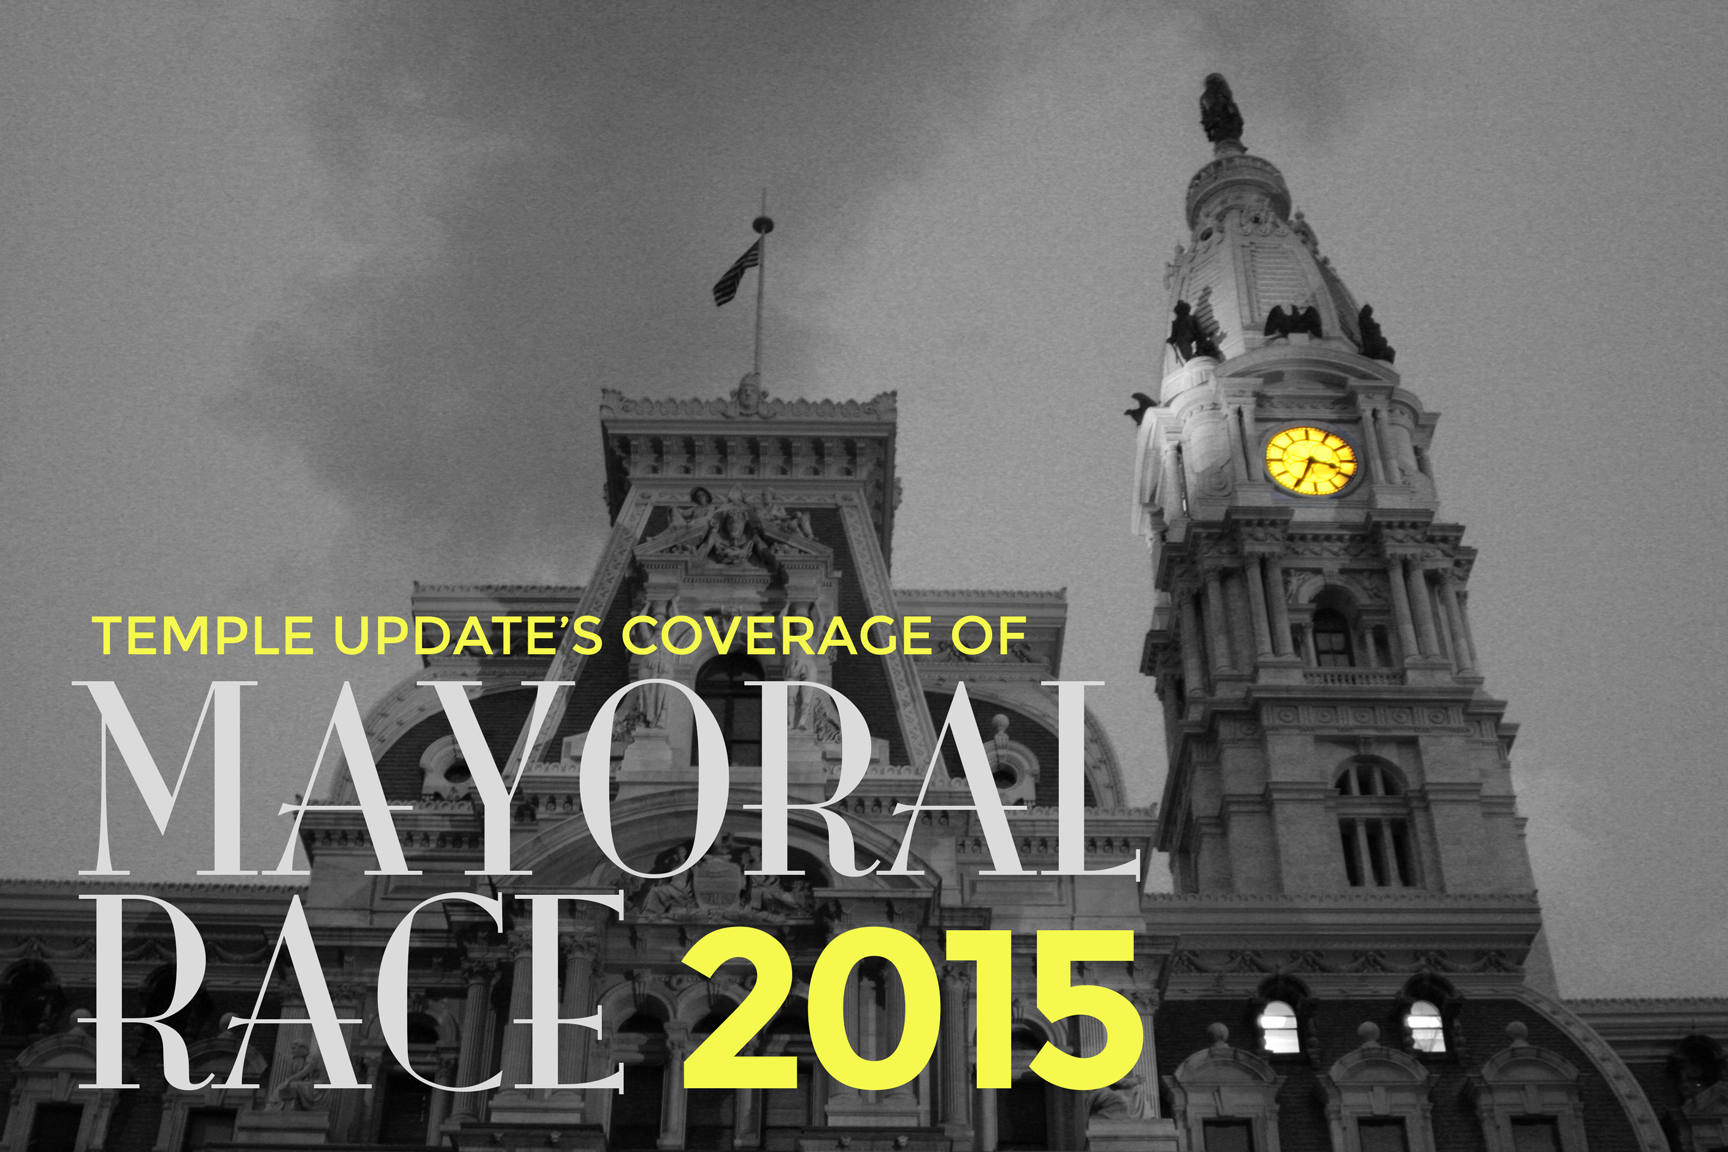 Temple Update's Coverage of Mayoral Race 2015